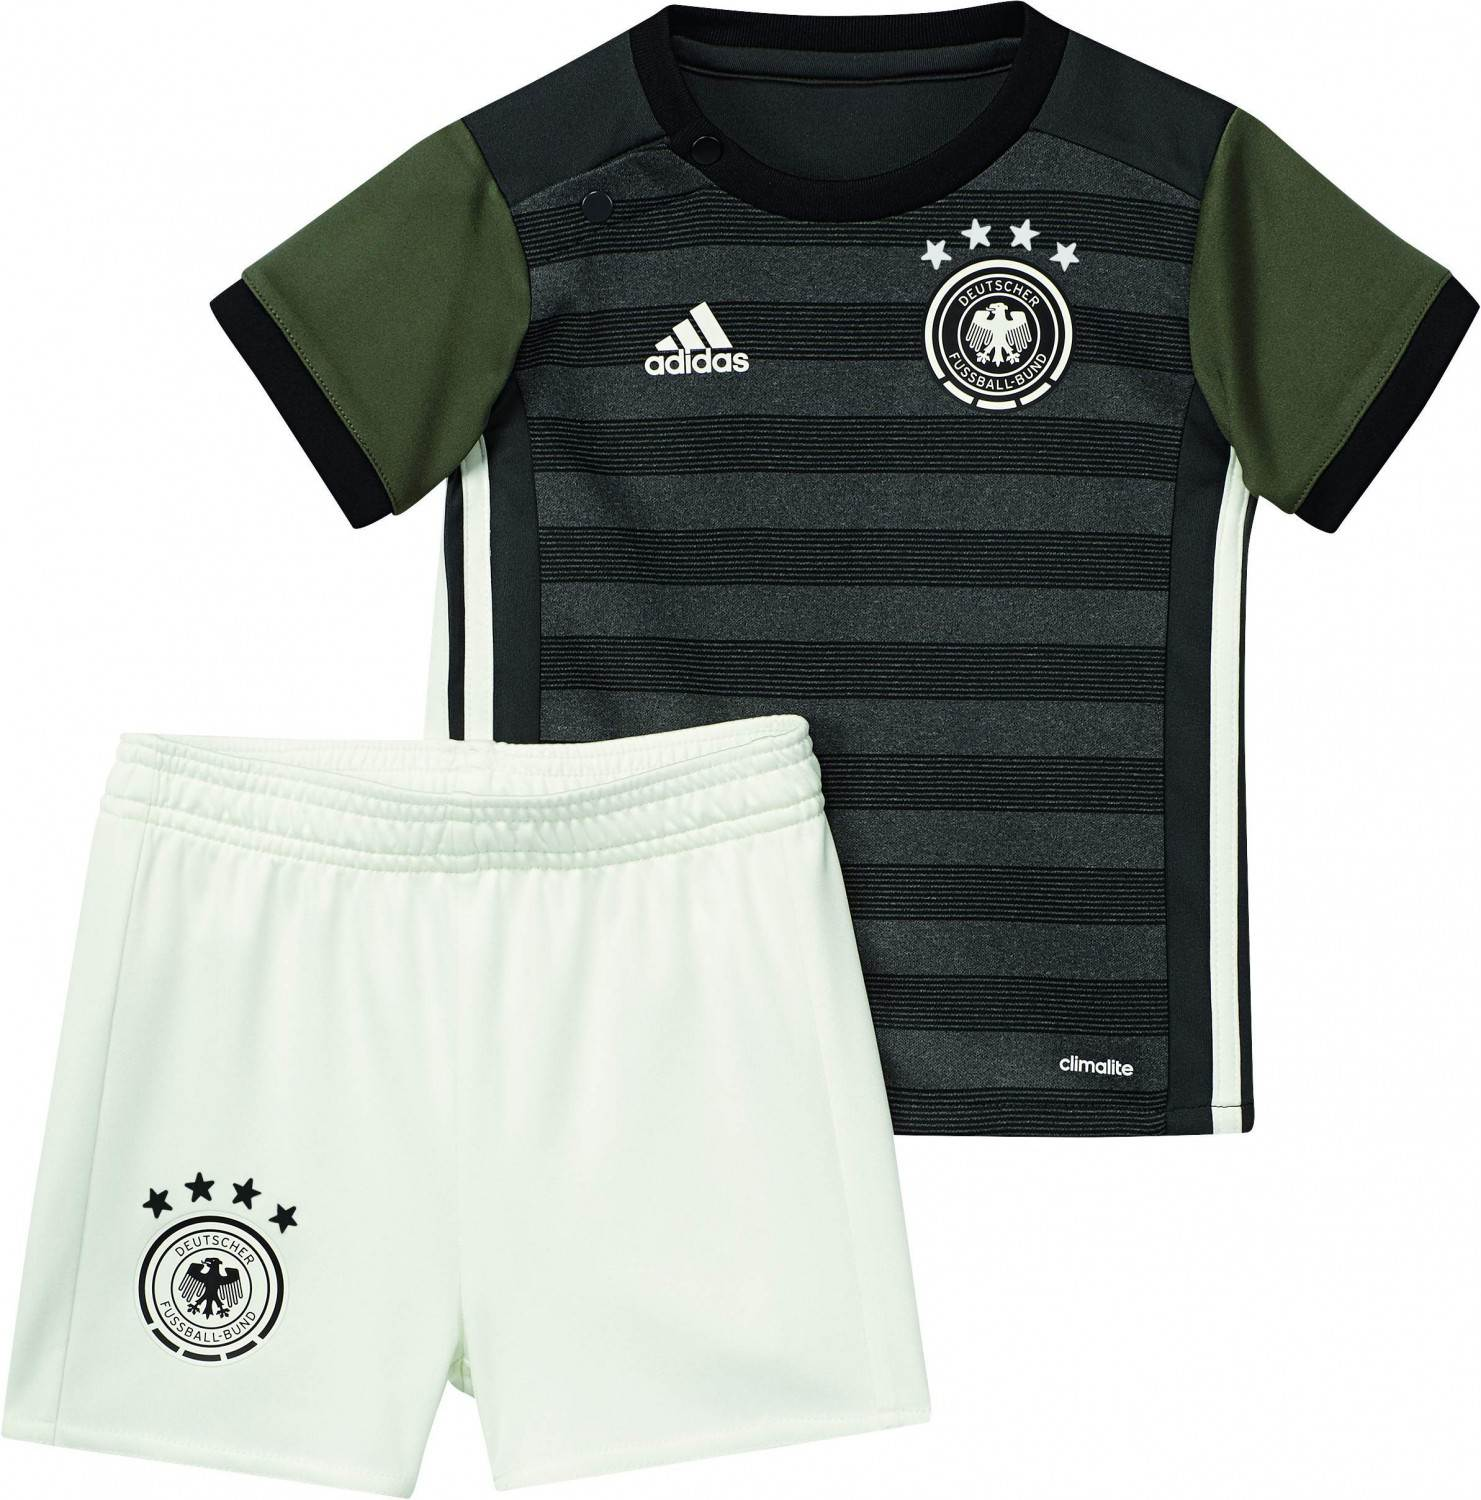 adidas DFB Away Baby Kit Auswärtsset (Größe 74, dark grey heather off white base green s15)